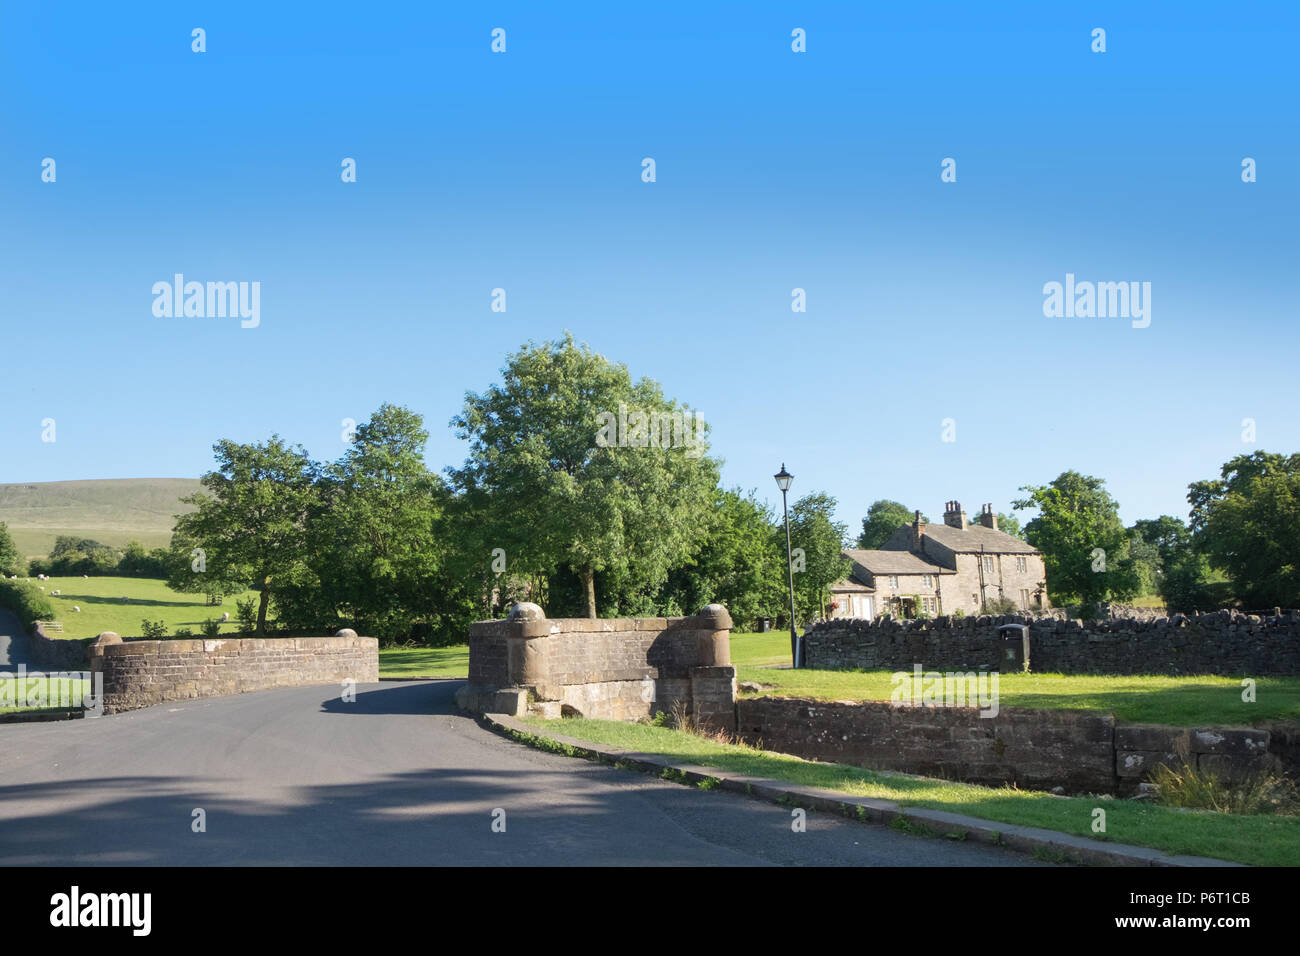 Downham, Clitheroe, Lancashire, UK. Downham is one of the most unspoilt villages in the region and often used as a film location - Stock Image